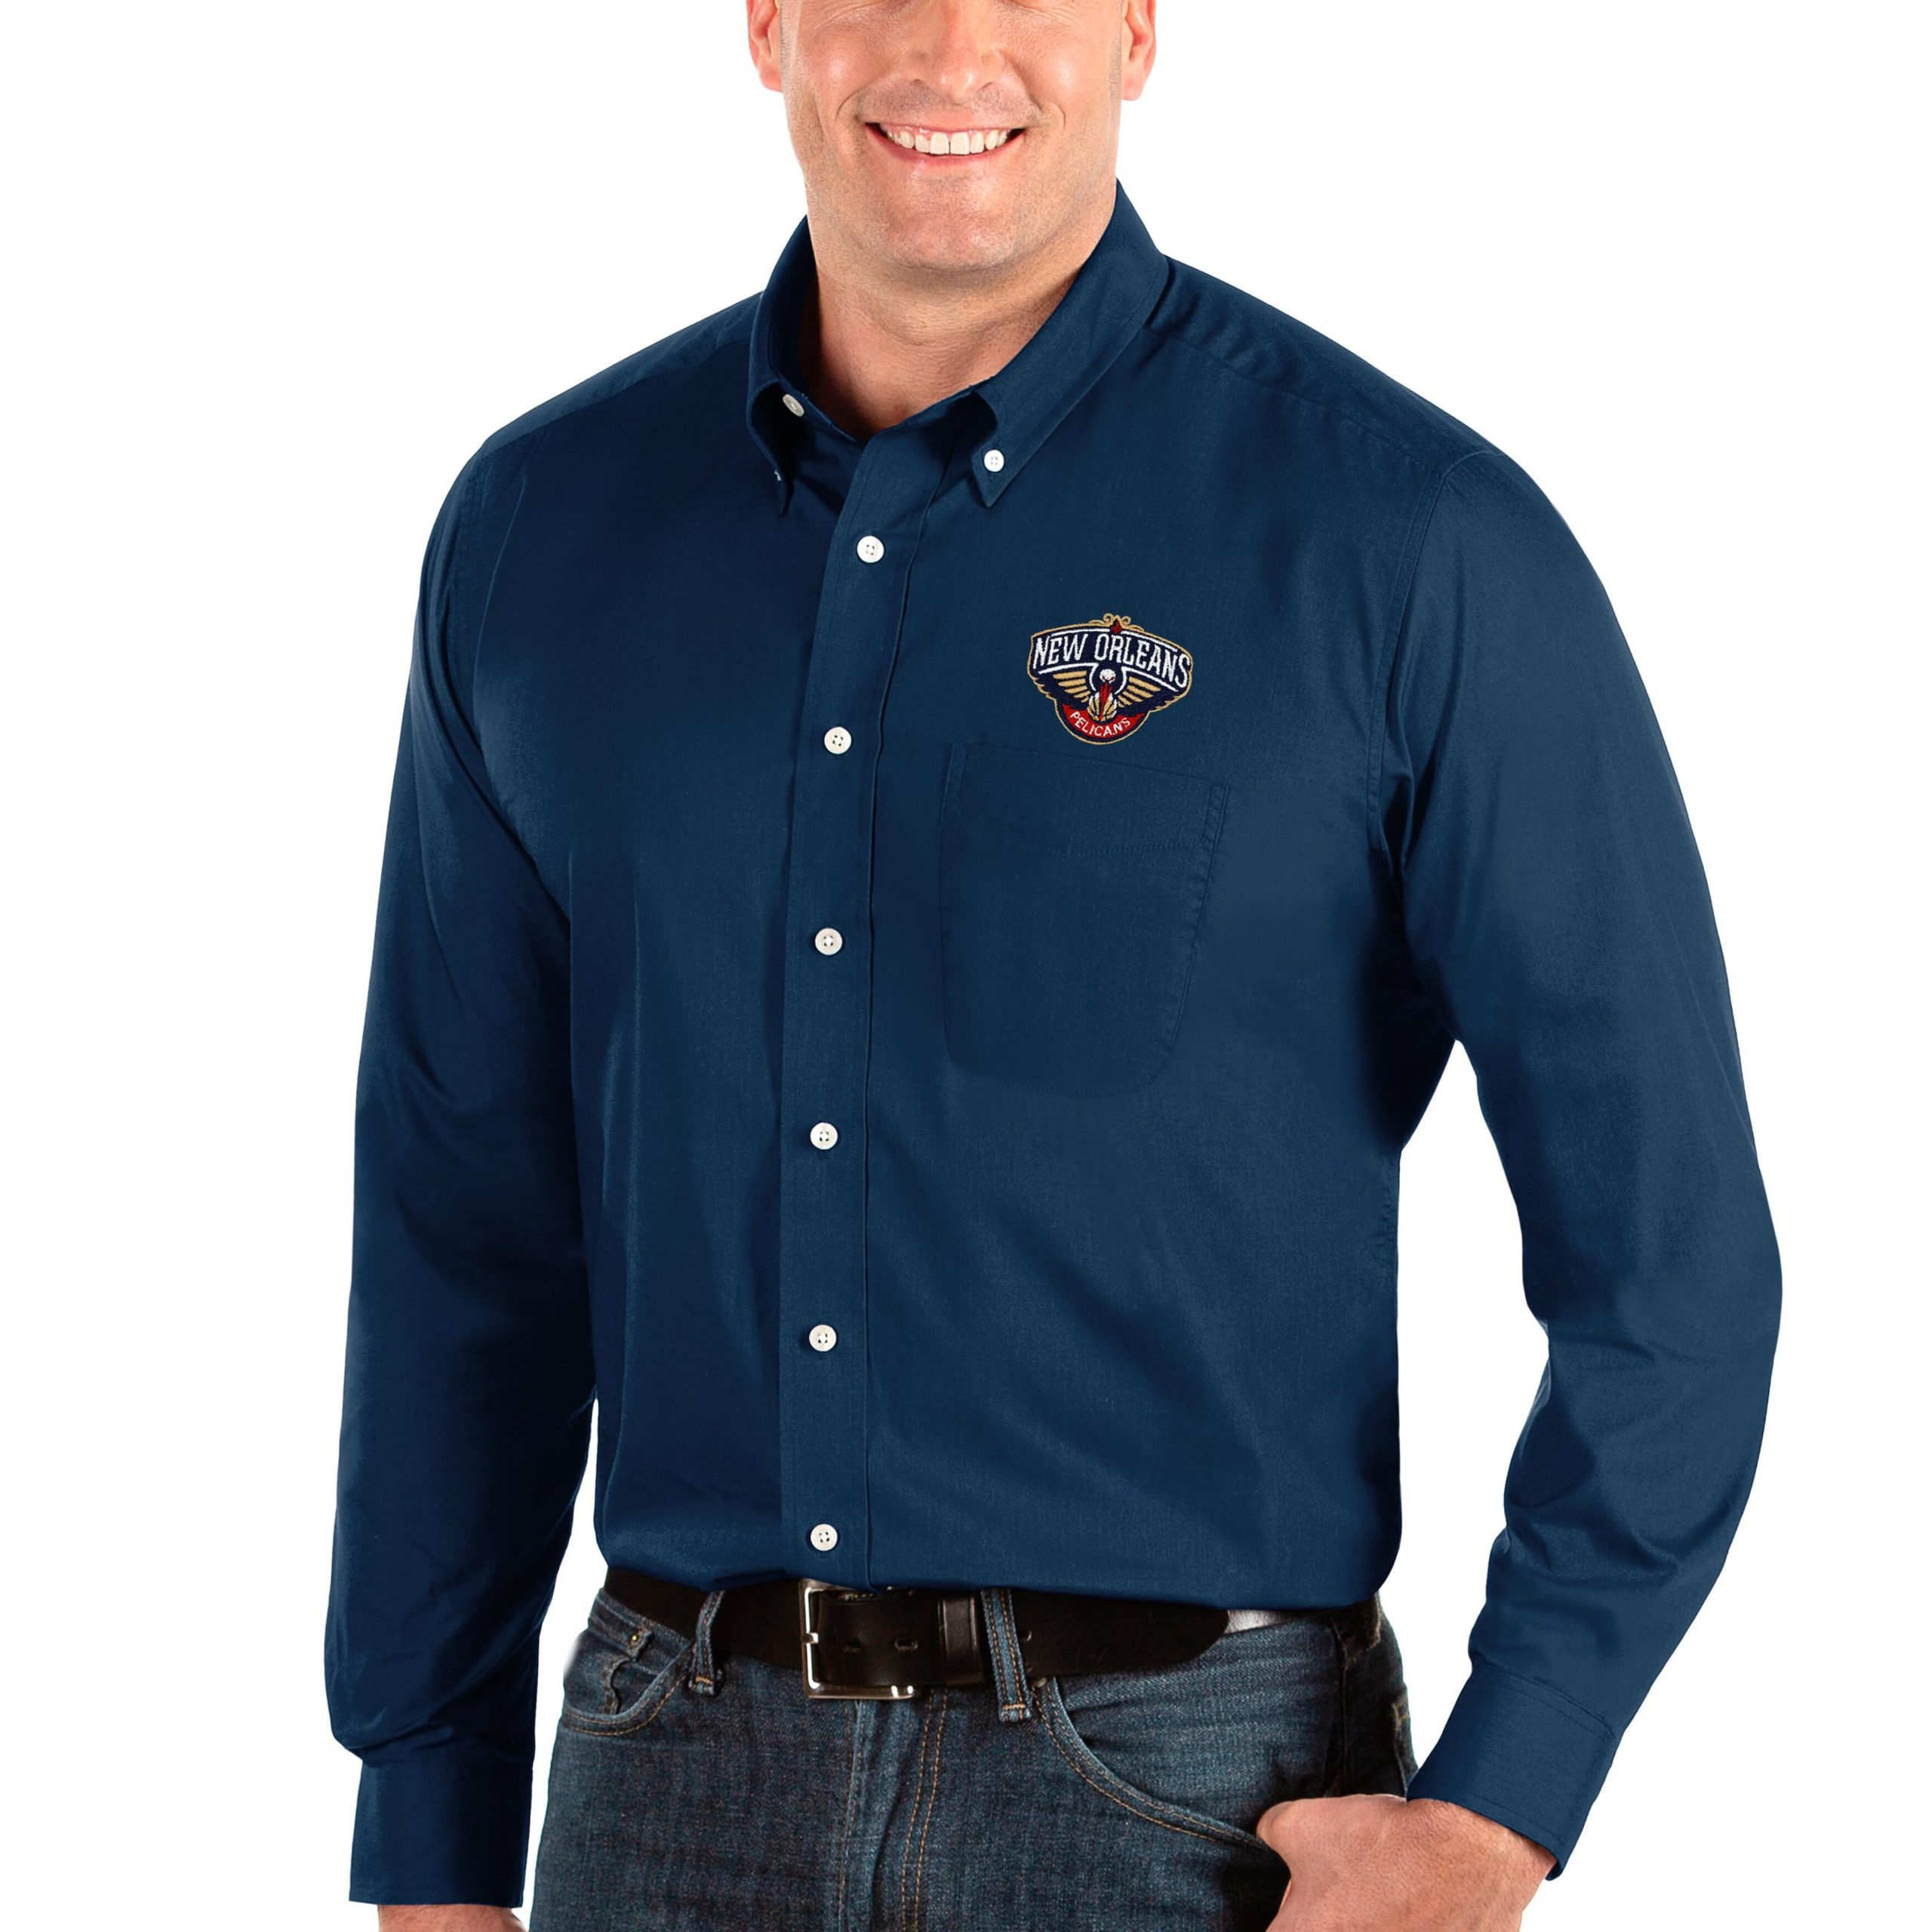 New Orleans Pelicans Antigua Big & Tall Dynasty Long Sleeve Button-Down Shirt - Navy